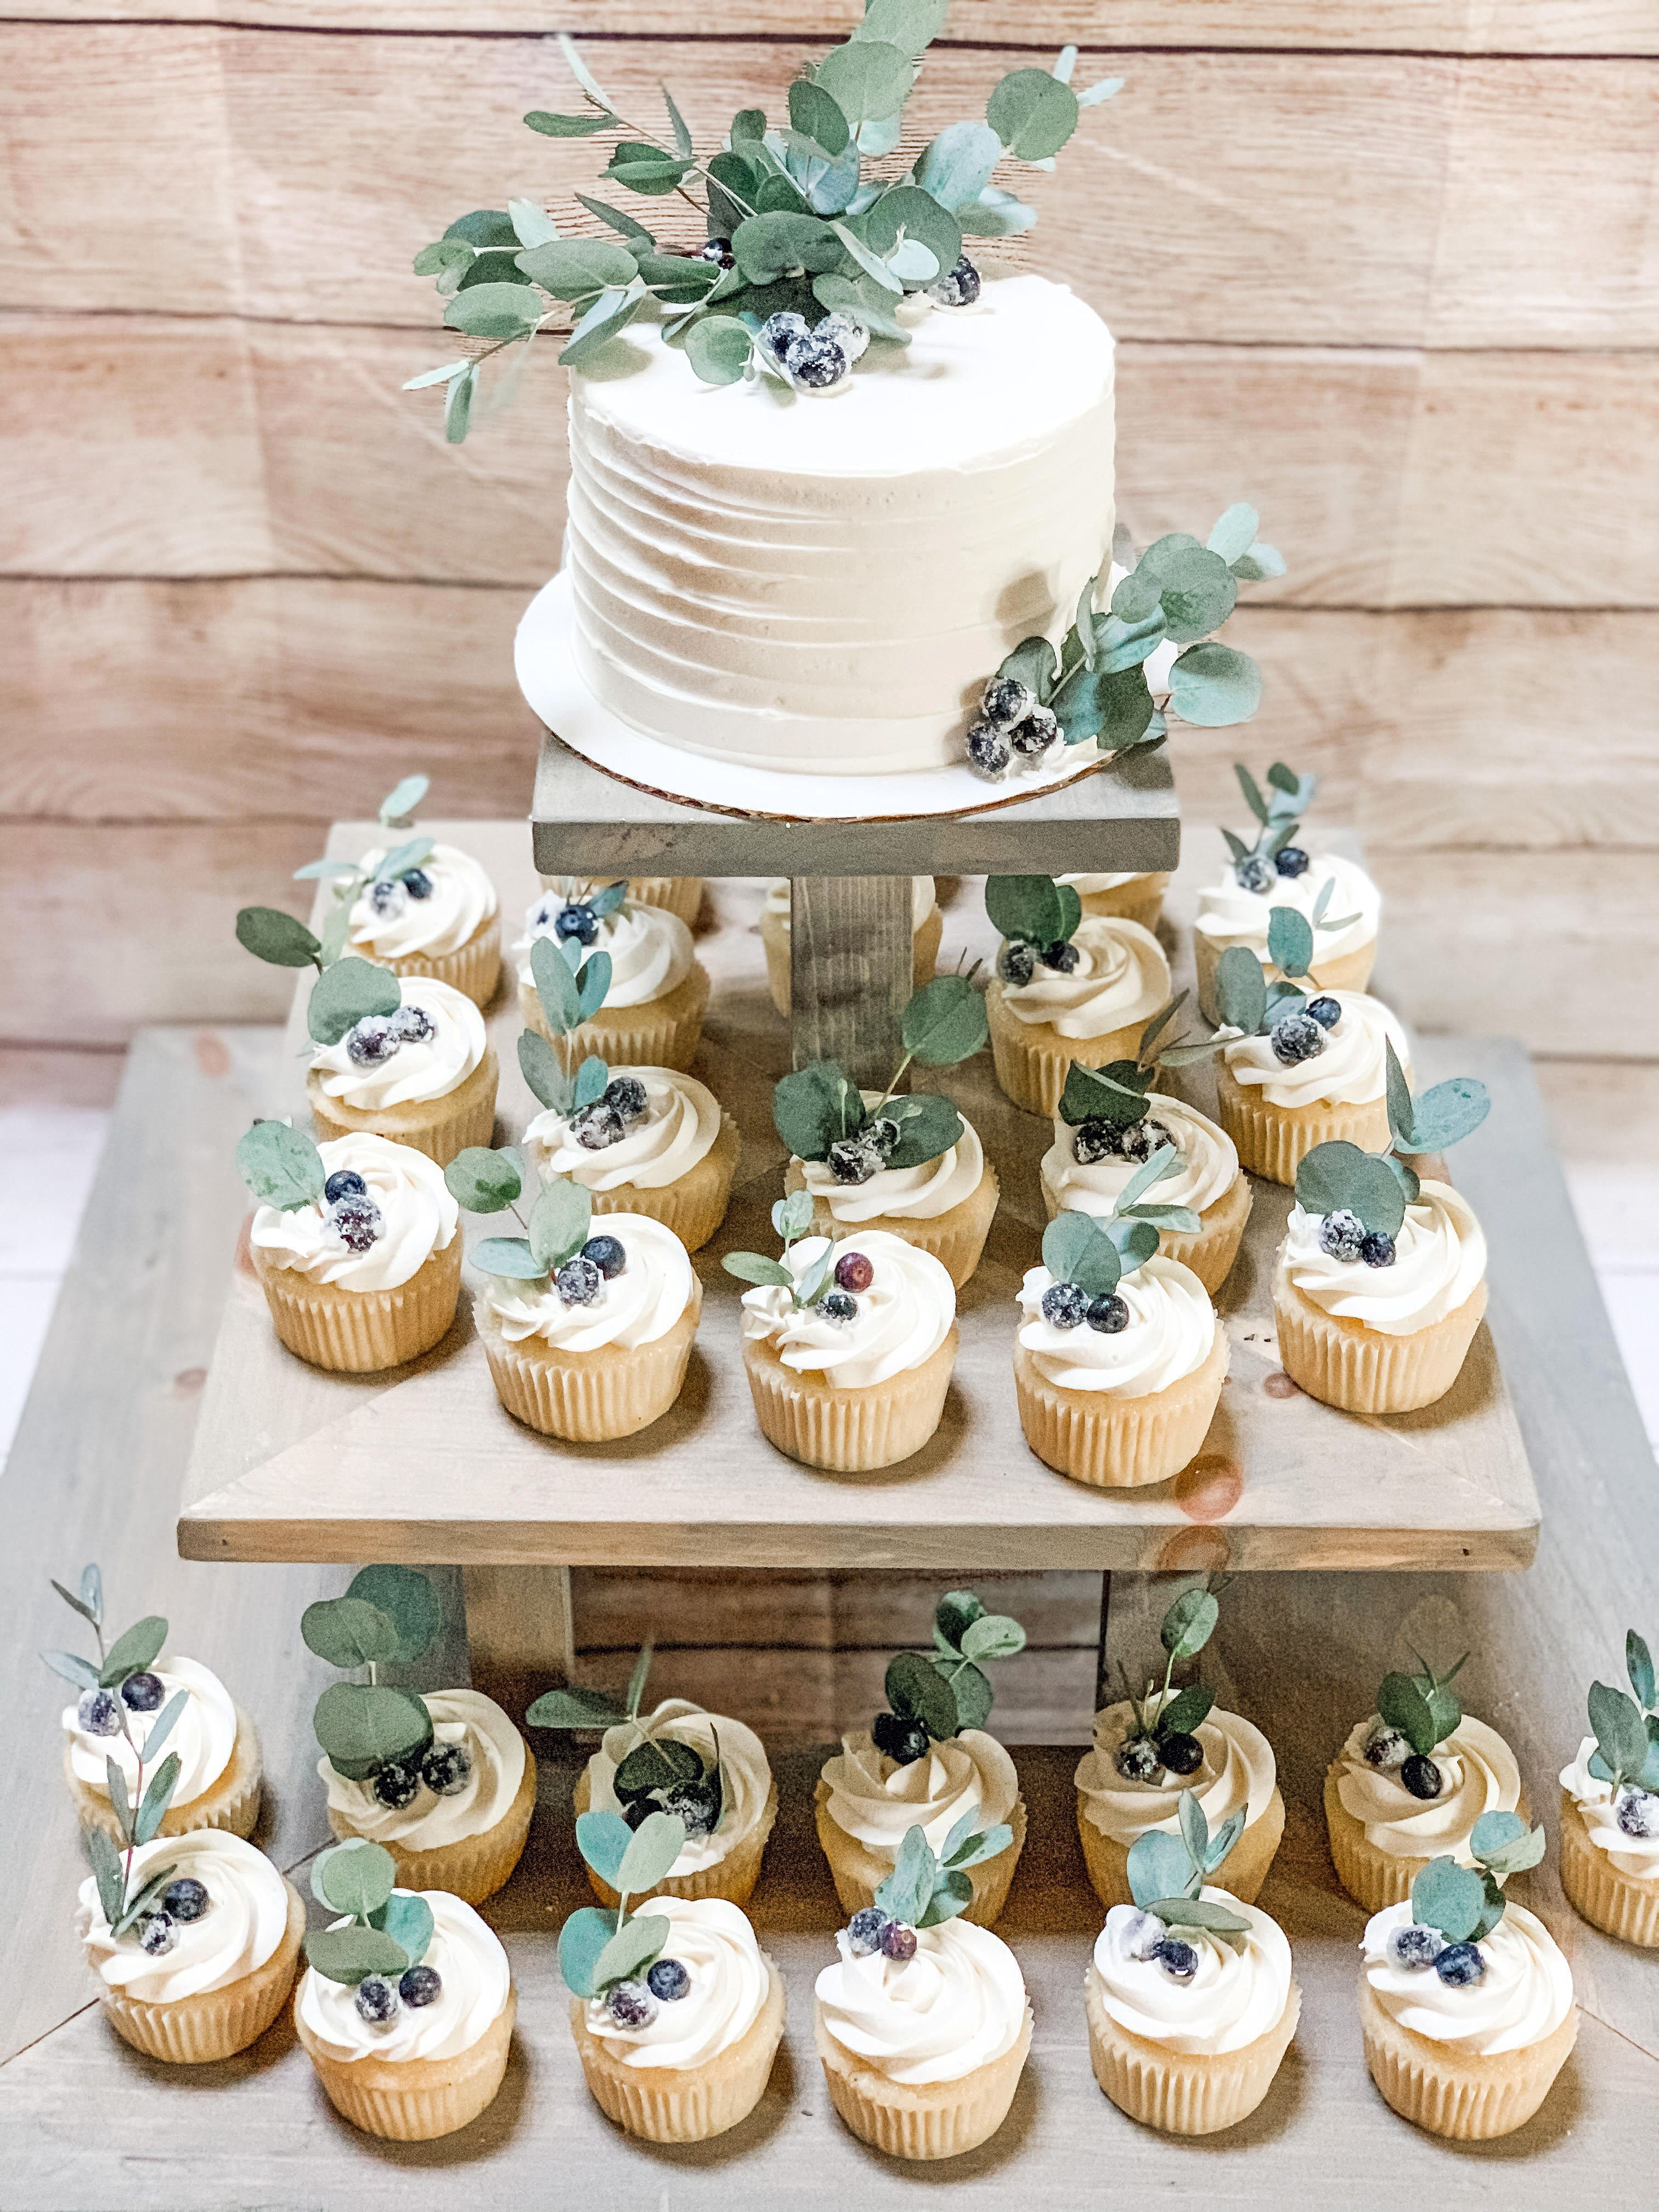 19 Cupcake Wedding Cake Ideas For A Unique Take On The Trendy Treat In 2021 Wedding Cakes With Cupcakes Wedding Cupcakes Simple Wedding Cake